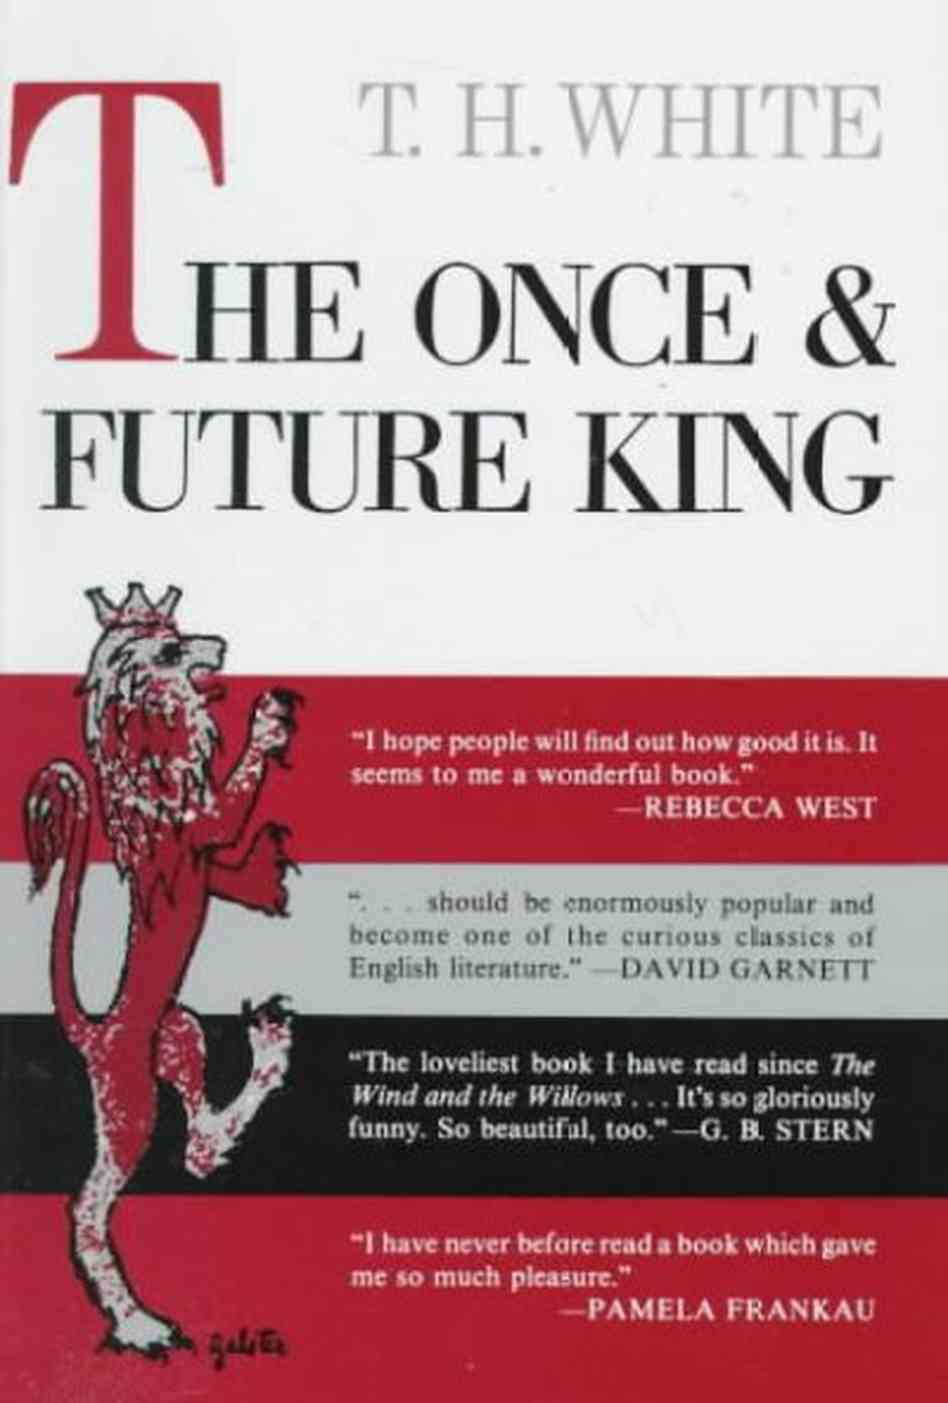 a review of th whites novel the once and future king